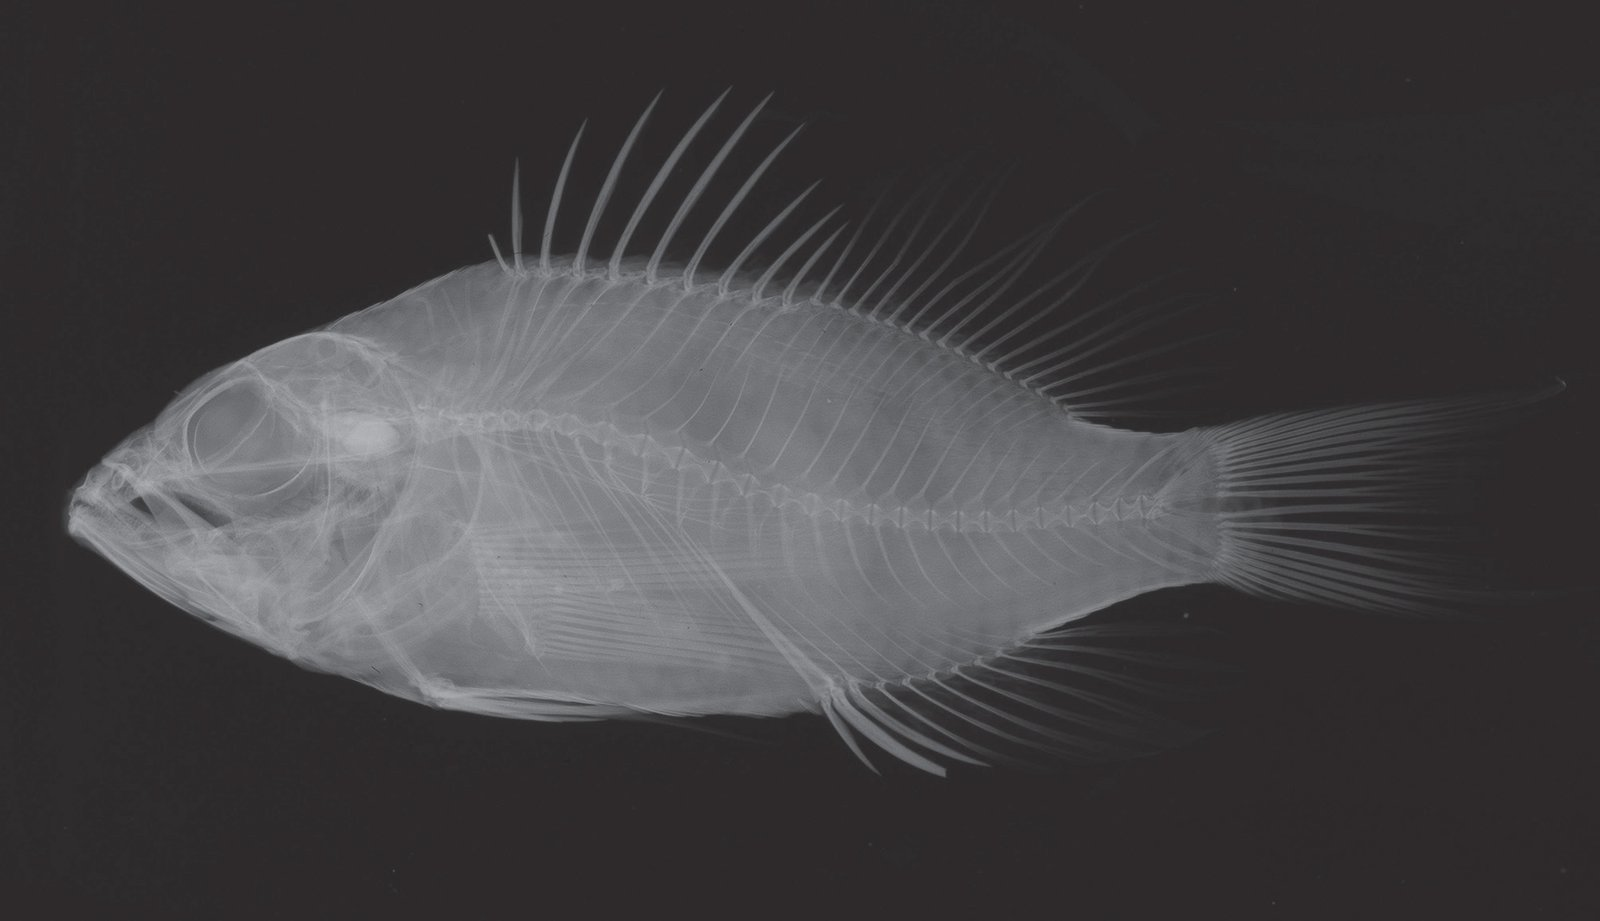 : X-ray of holotype, Plectranthias cruentus (AMS I.42725-007). X-rays are used to study the skeleton of a fish without damaging the specimen in any way, different skeletal features can help identify and separate species.